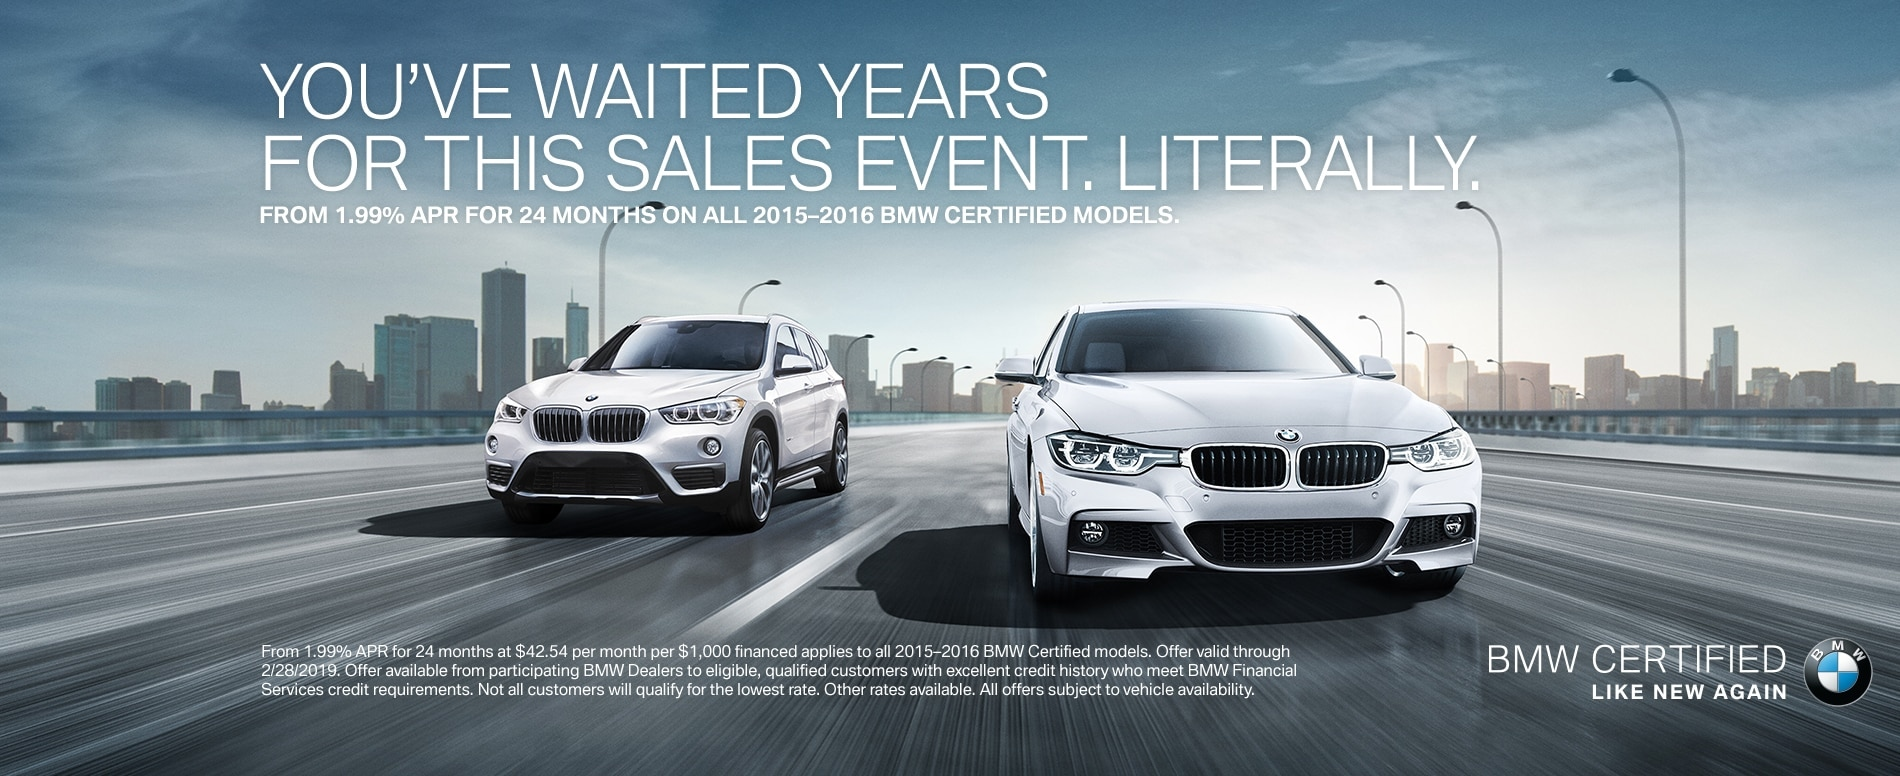 Bmw Gallery Of Norwood Ma Bmw Dealership Serving Greater Boston